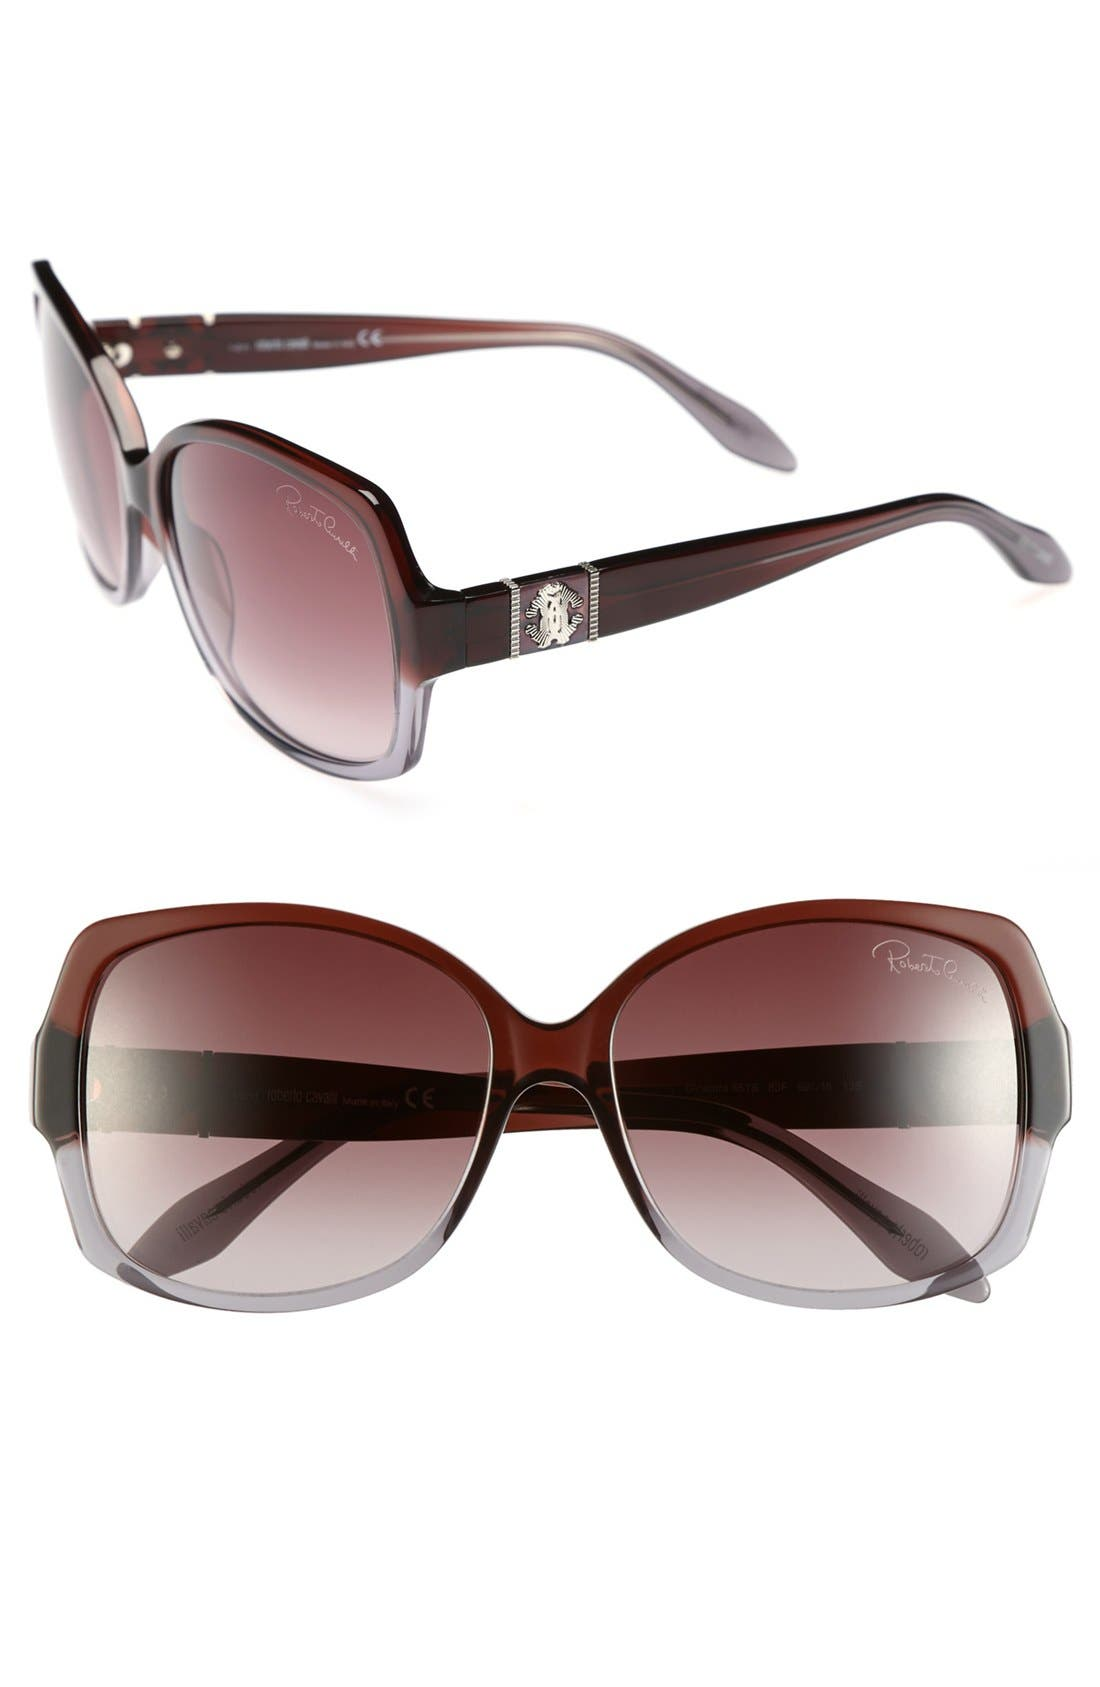 Alternate Image 1 Selected - Roberto Cavalli 59mm Oversized Sunglasses (Special Purchase)